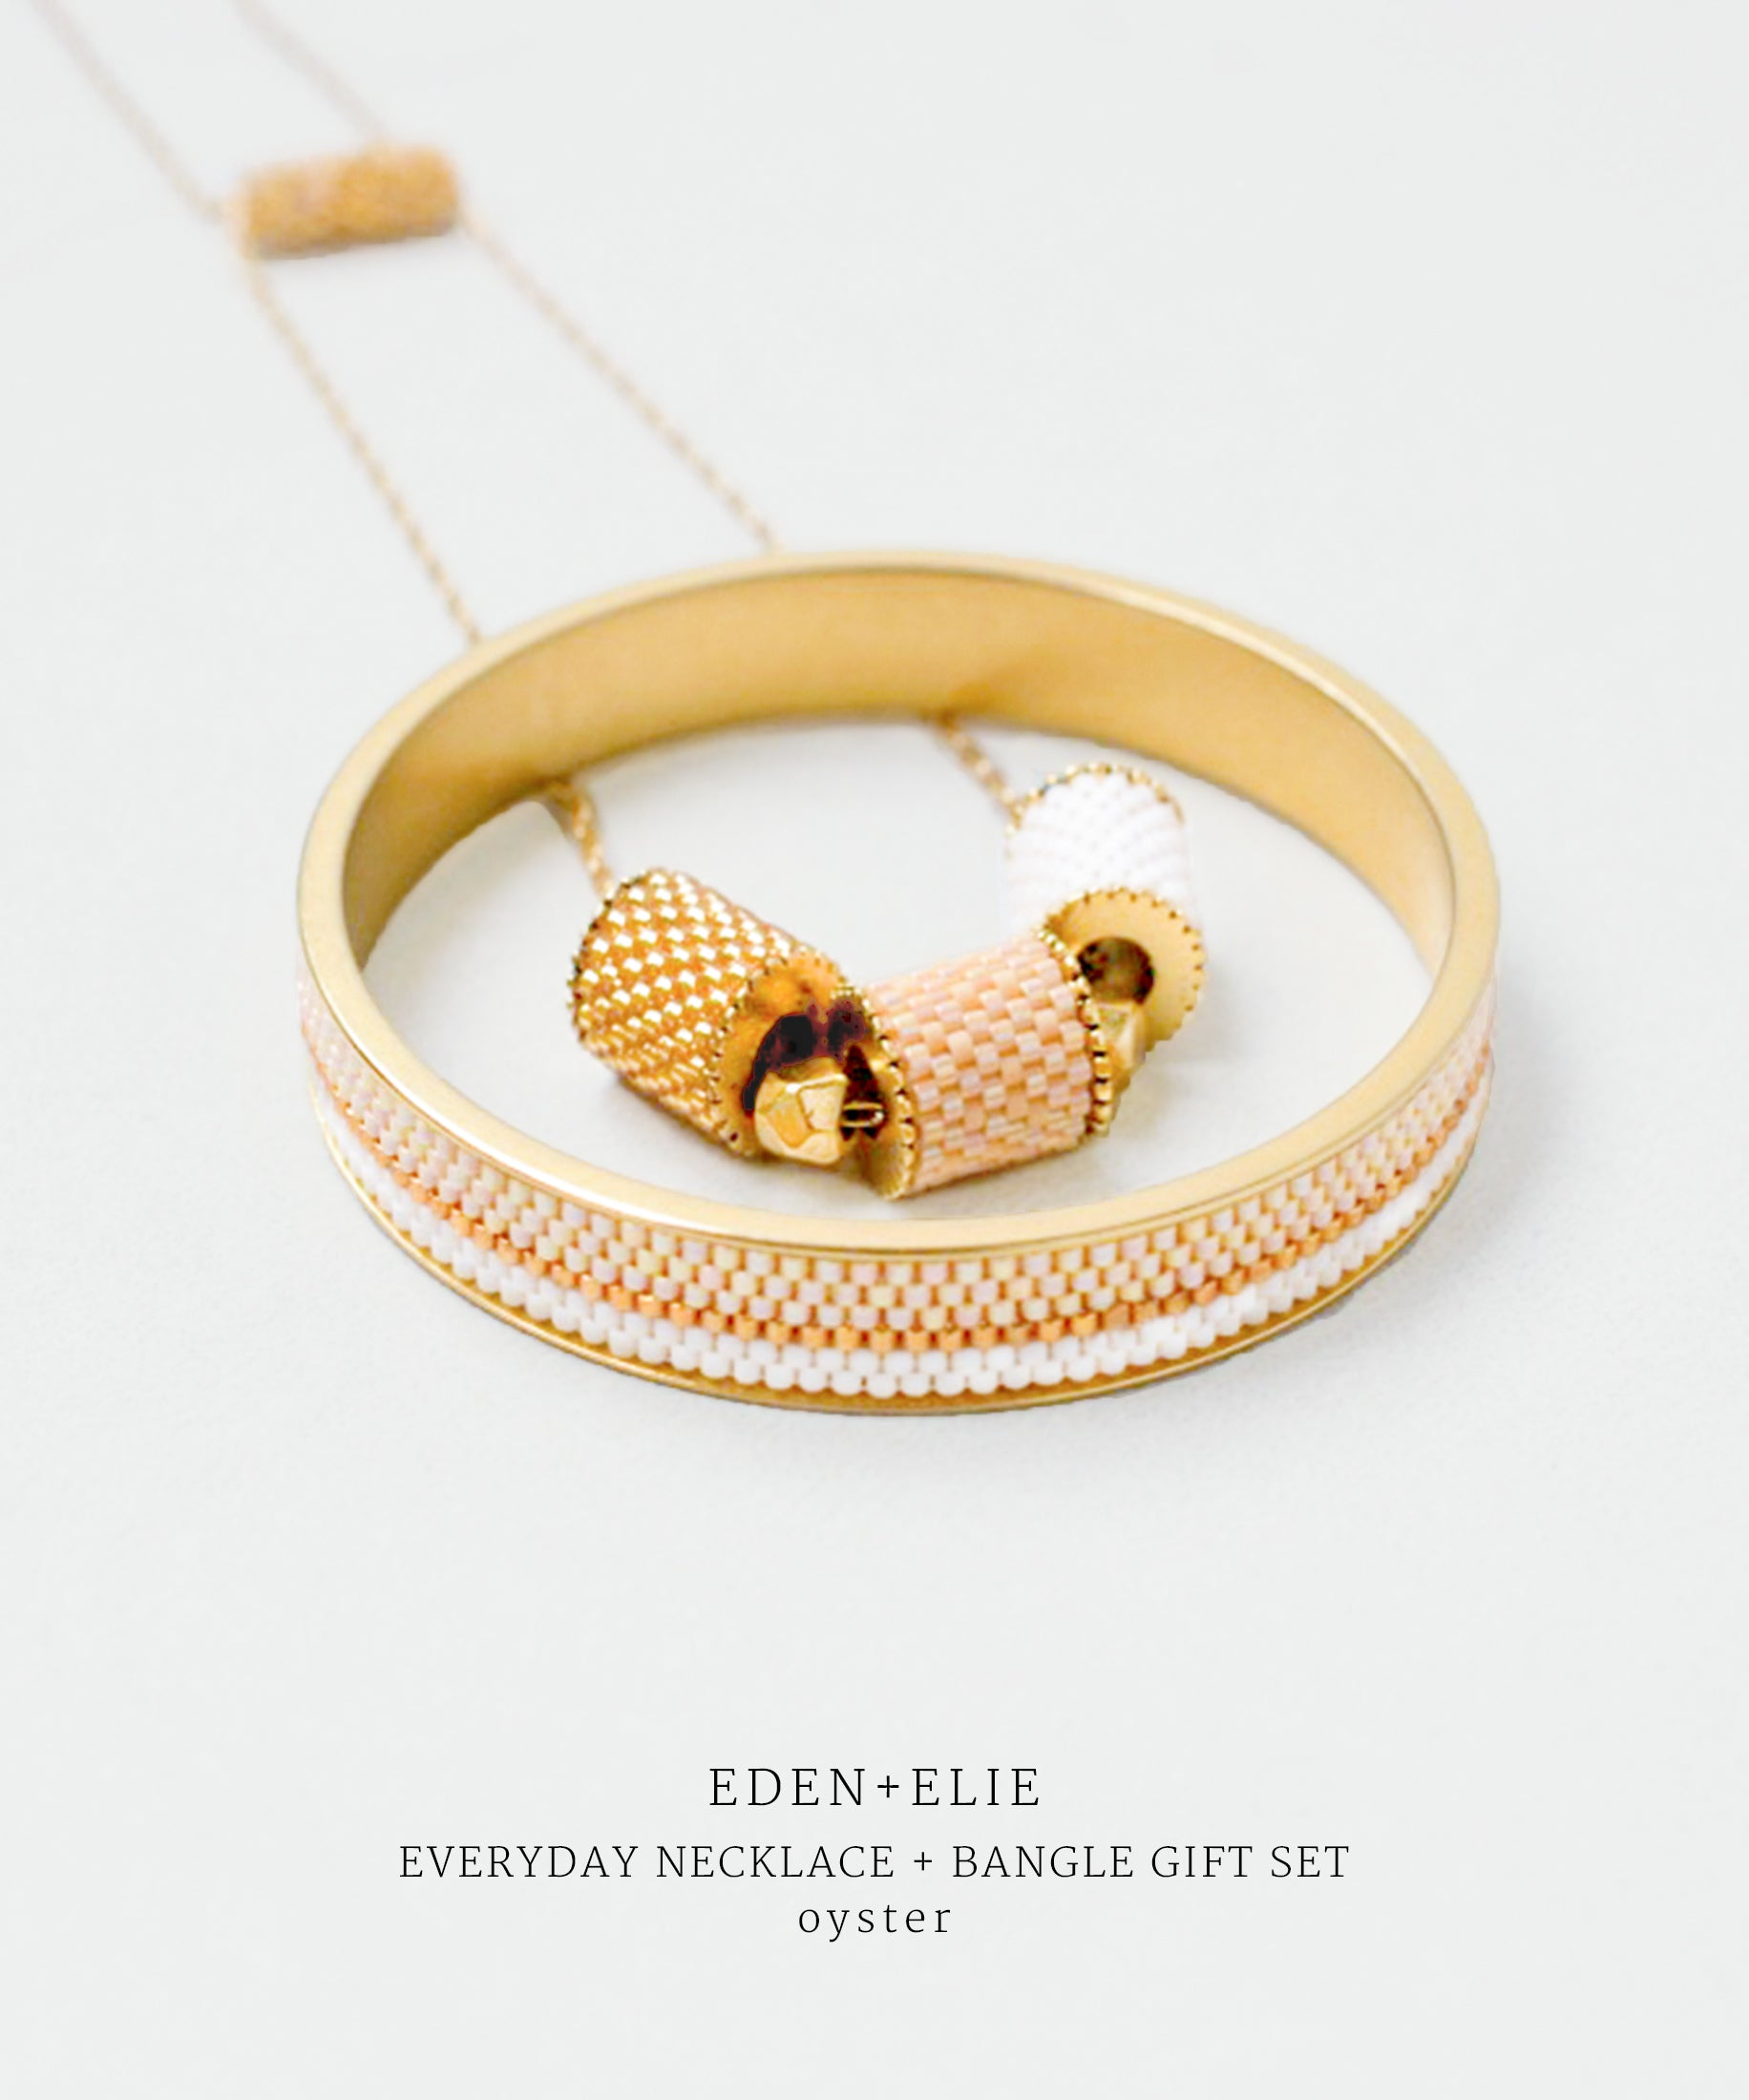 EDEN + ELIE gold plated jewelry Everyday adjustable length necklace + bangle set - light oyster